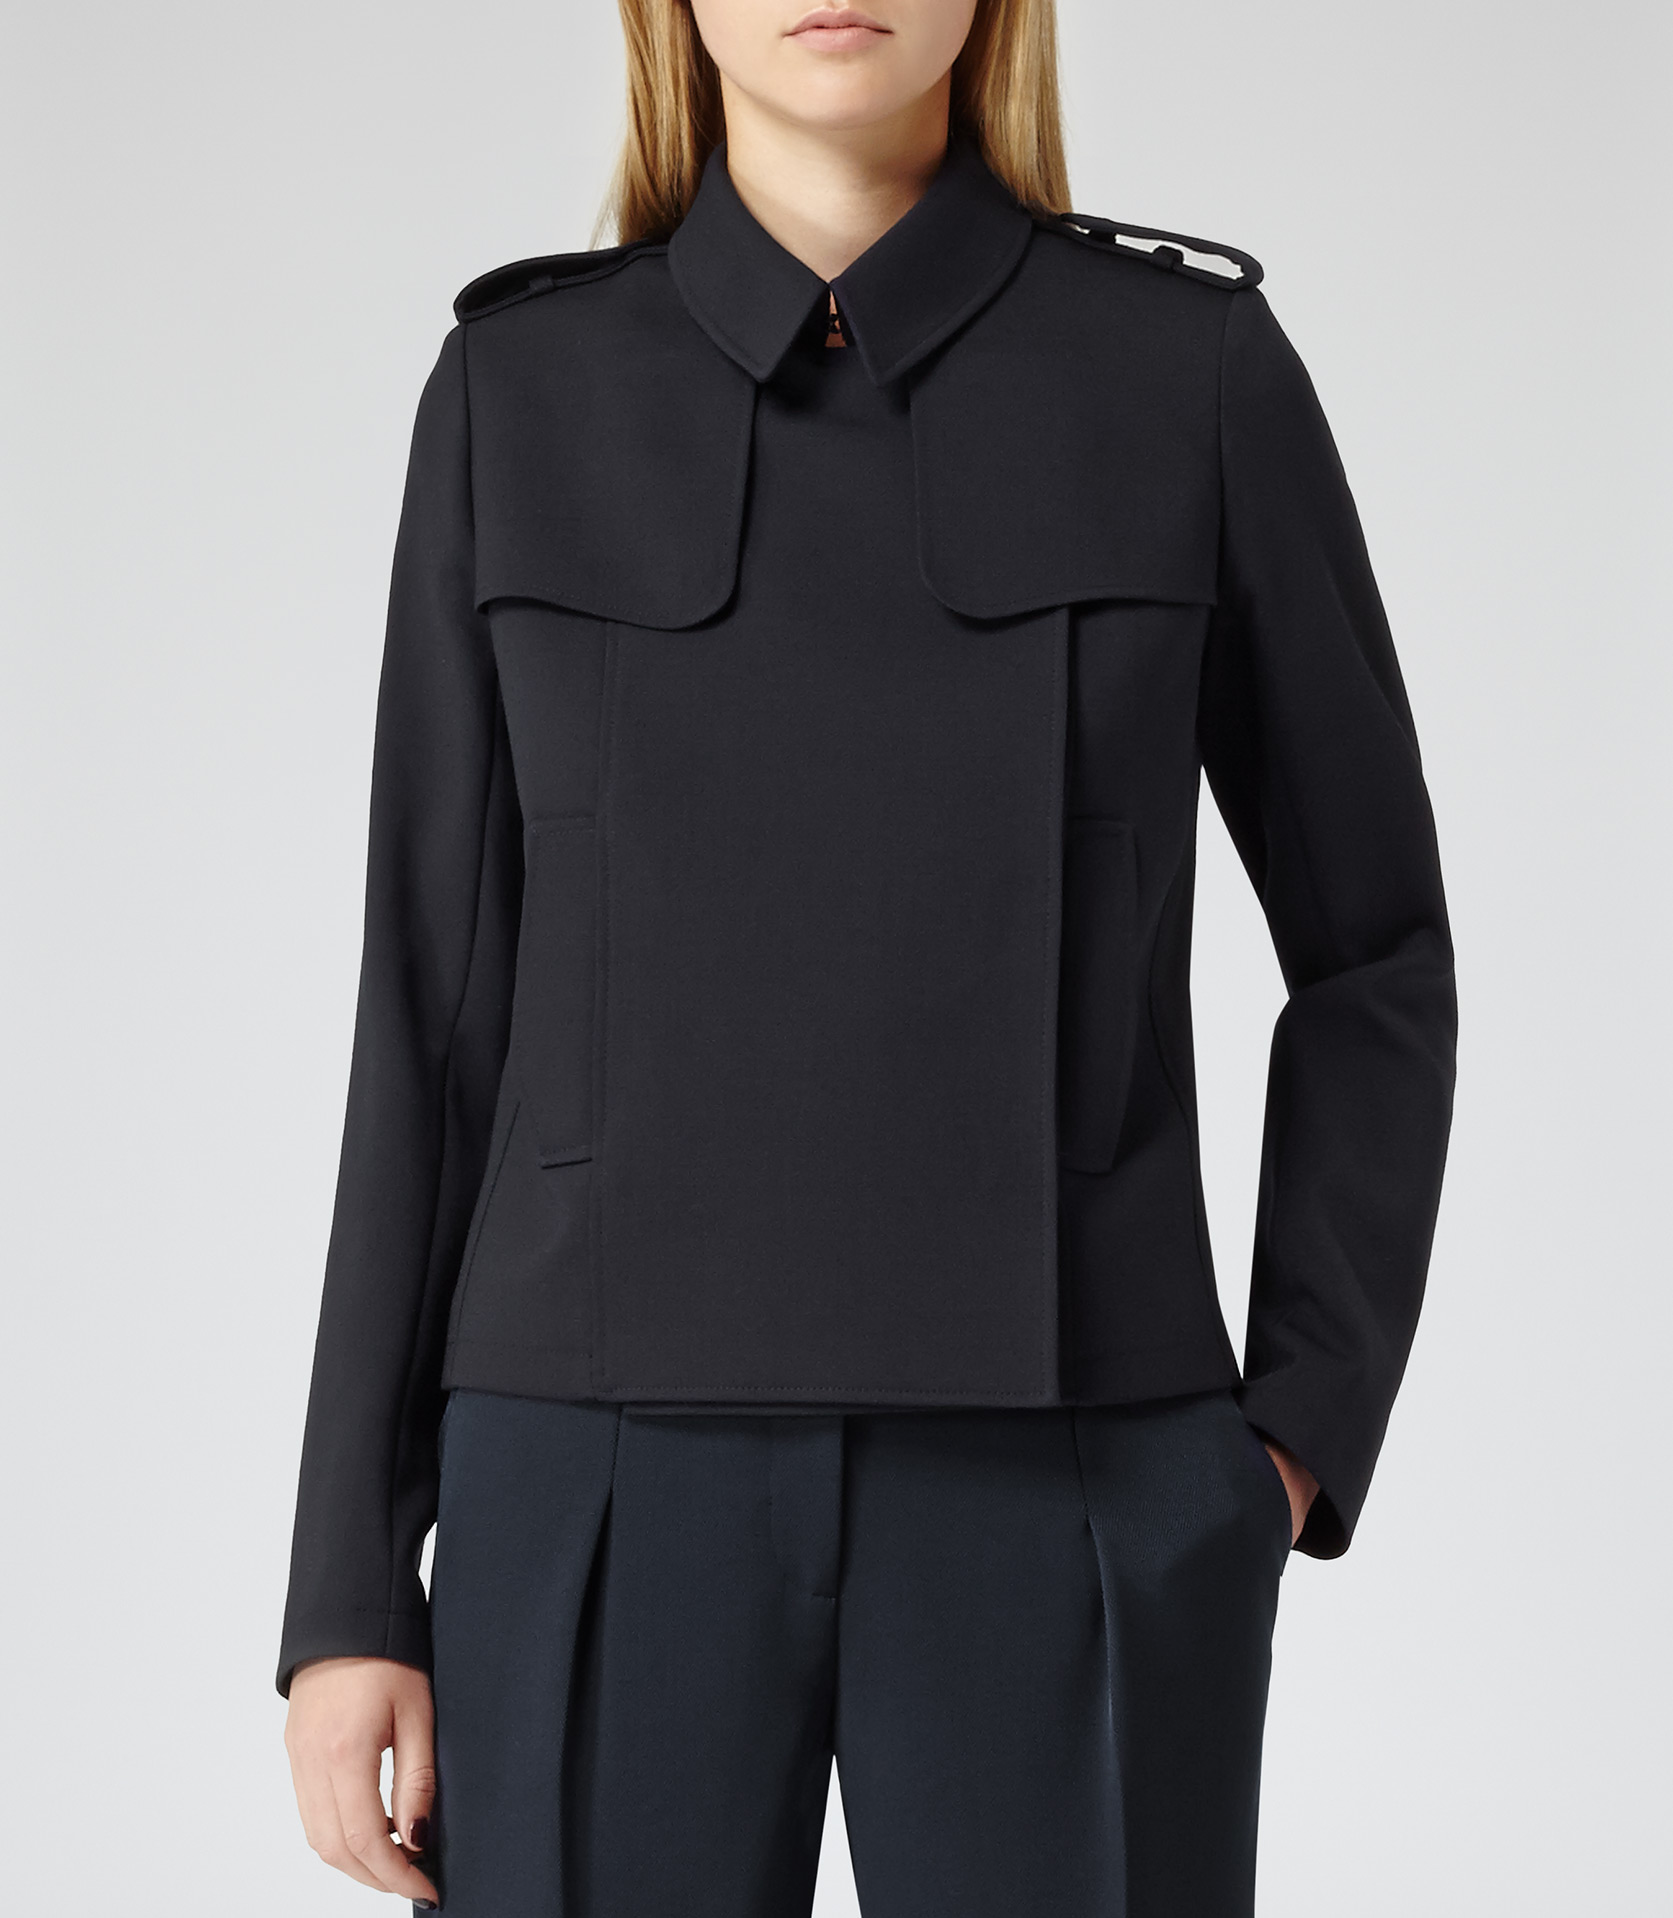 Caitlin Lux Blue Cropped Trench Jacket - REISS